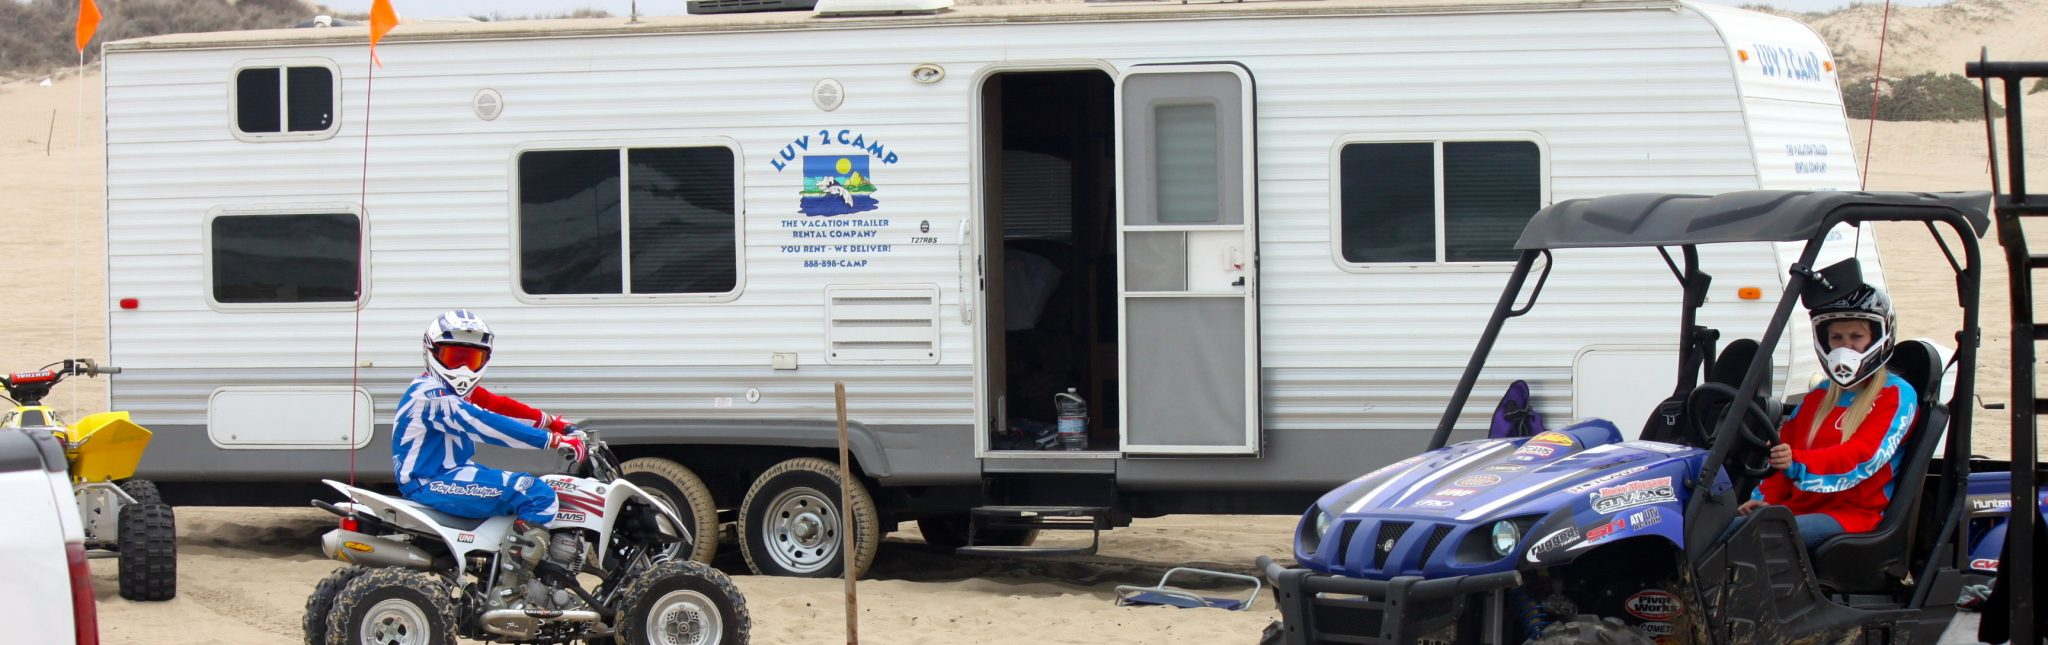 pismo-2013-luv-2-camp-rental